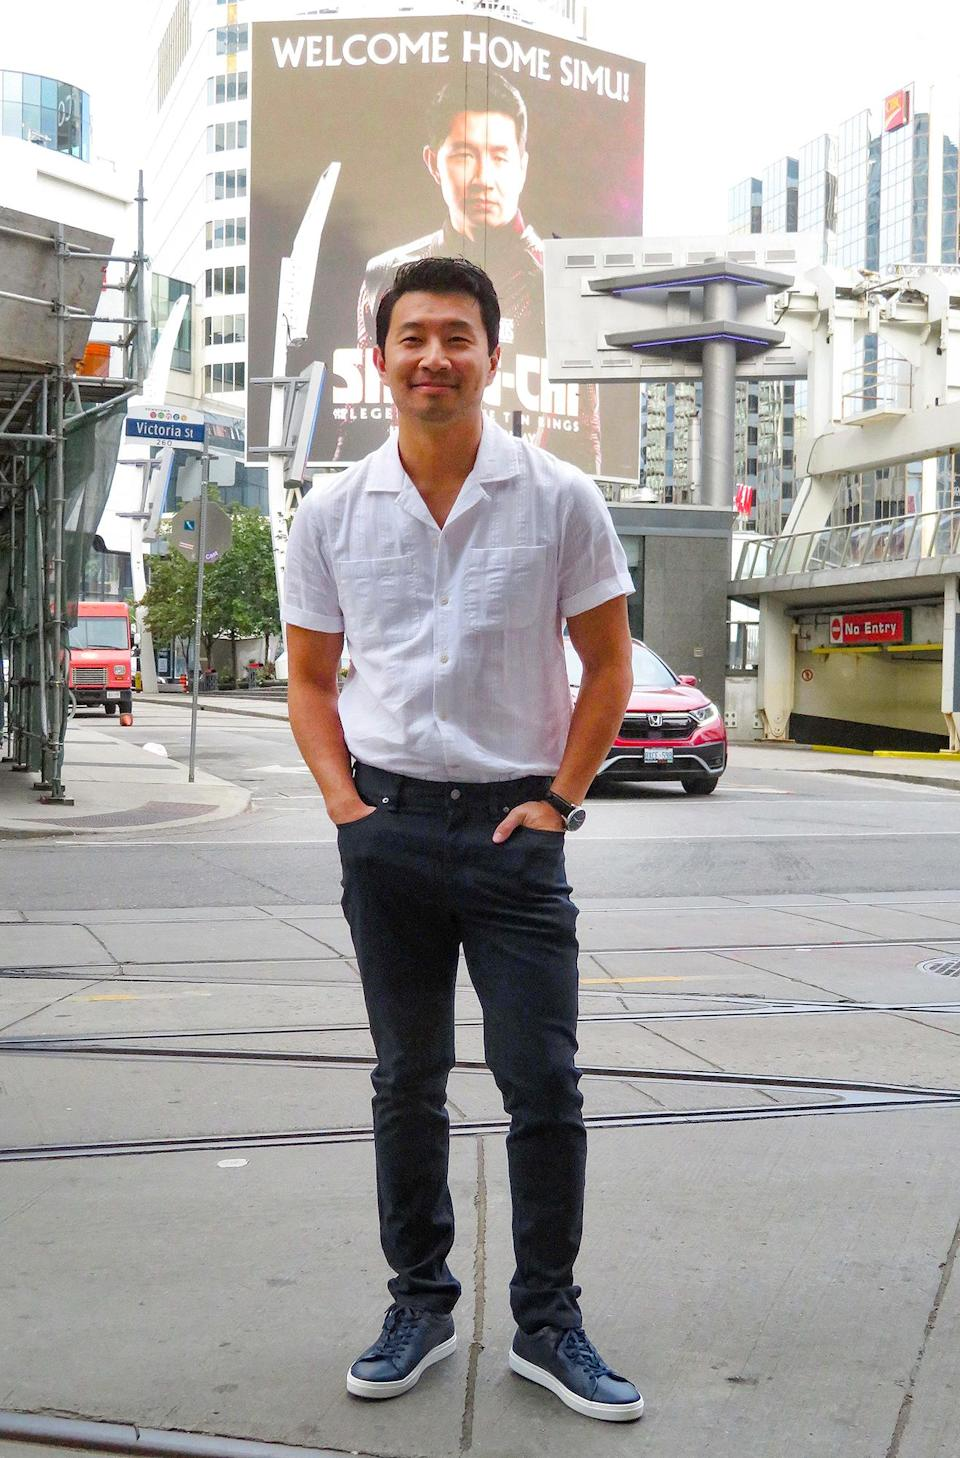 <p>Simu Liu promotes his new movie <em>Shang-Chi and the Legend of the Ten Rings</em> in his hometown of Toronto on Sept. 1.</p>